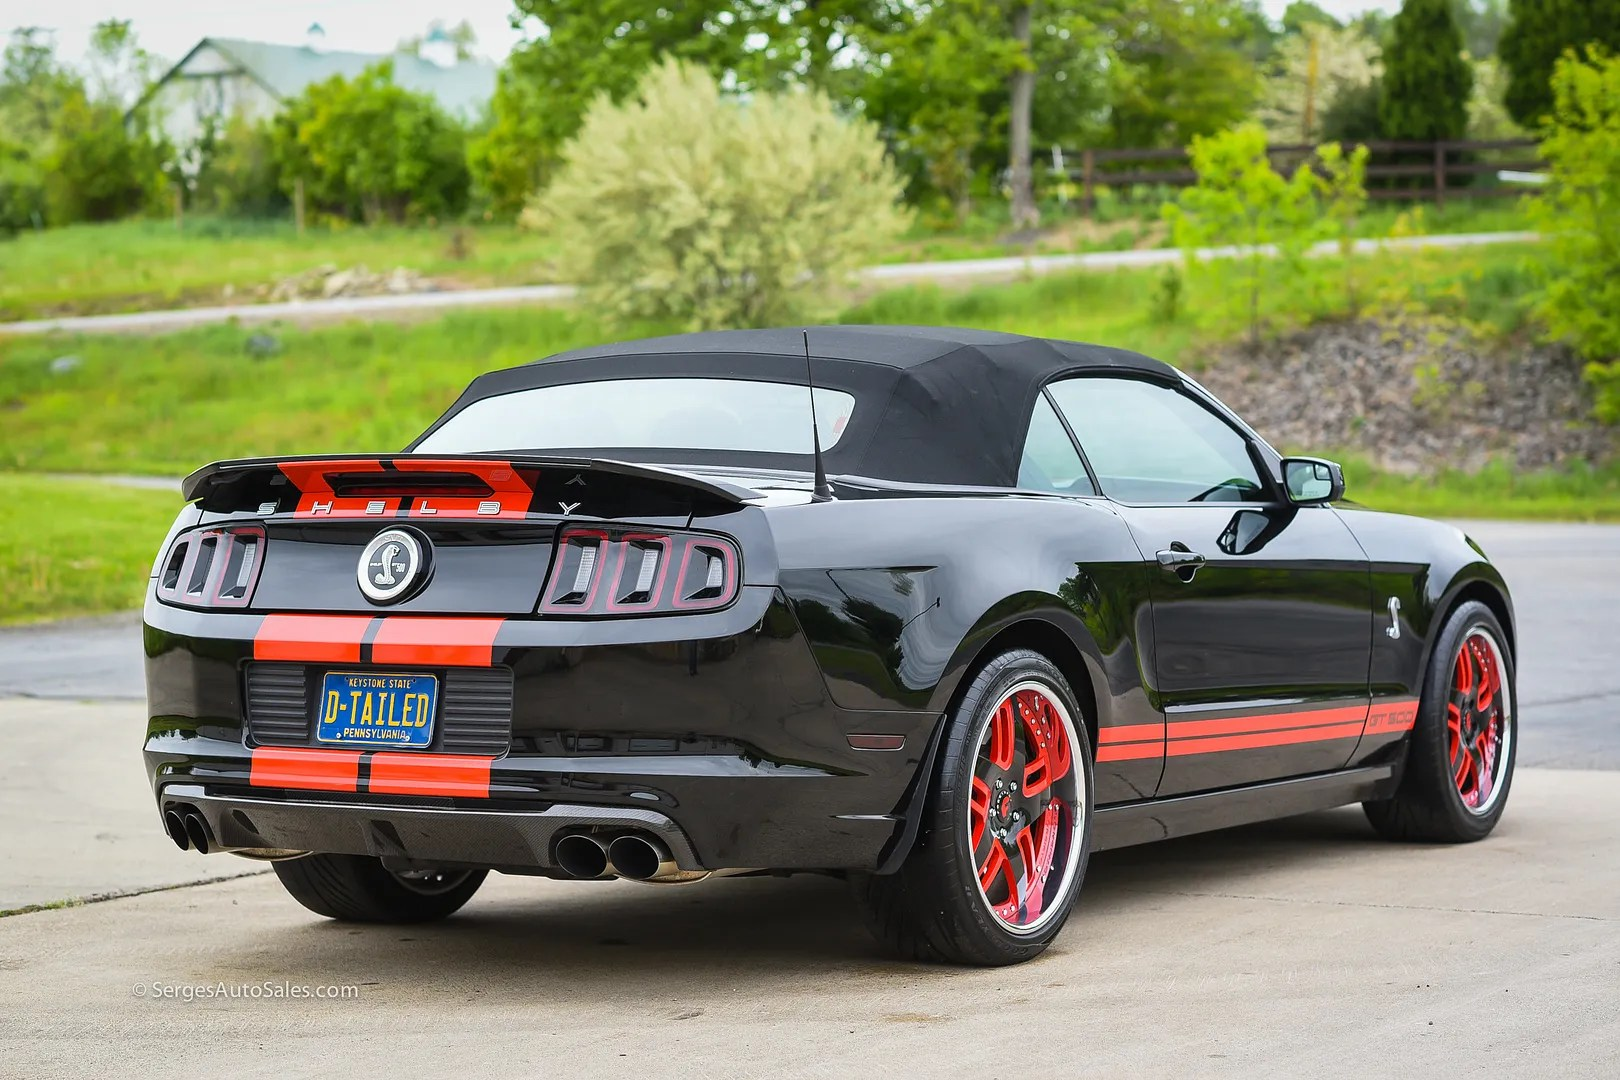 photo Serges-Auto-Sales-shelby-mustang-gt-for-sale-convertible-gt500-scranton-pa-12_zps7m68x9hk.jpg